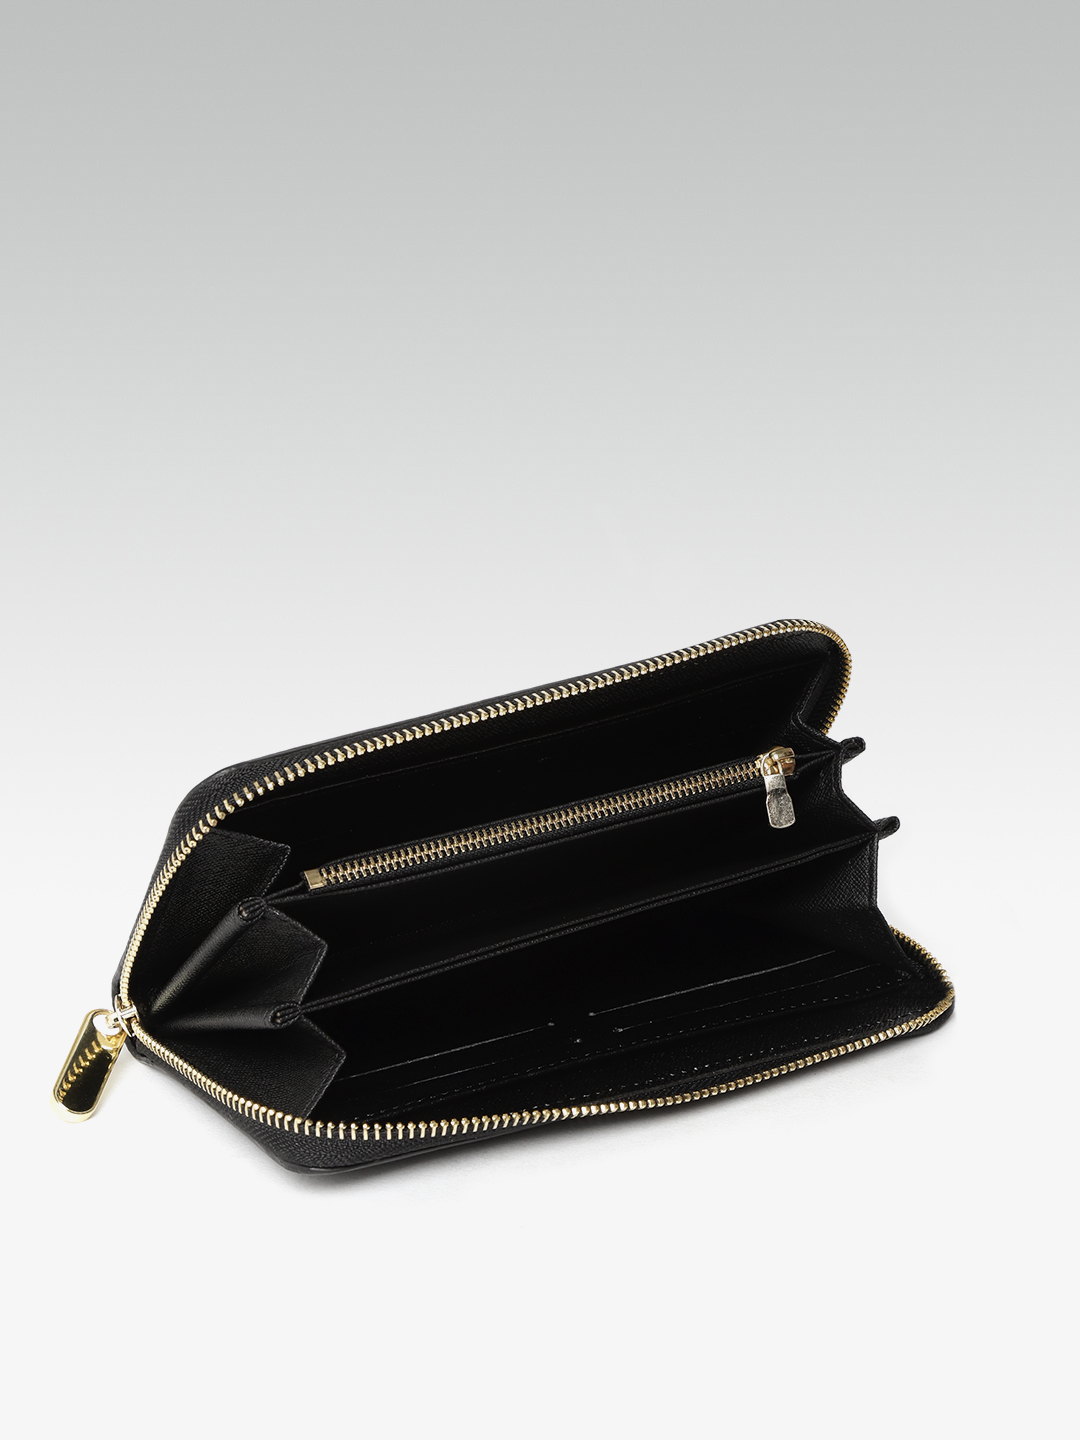 Wallets and Makeup Pouches-Sticking To the Classics Black Wallet4